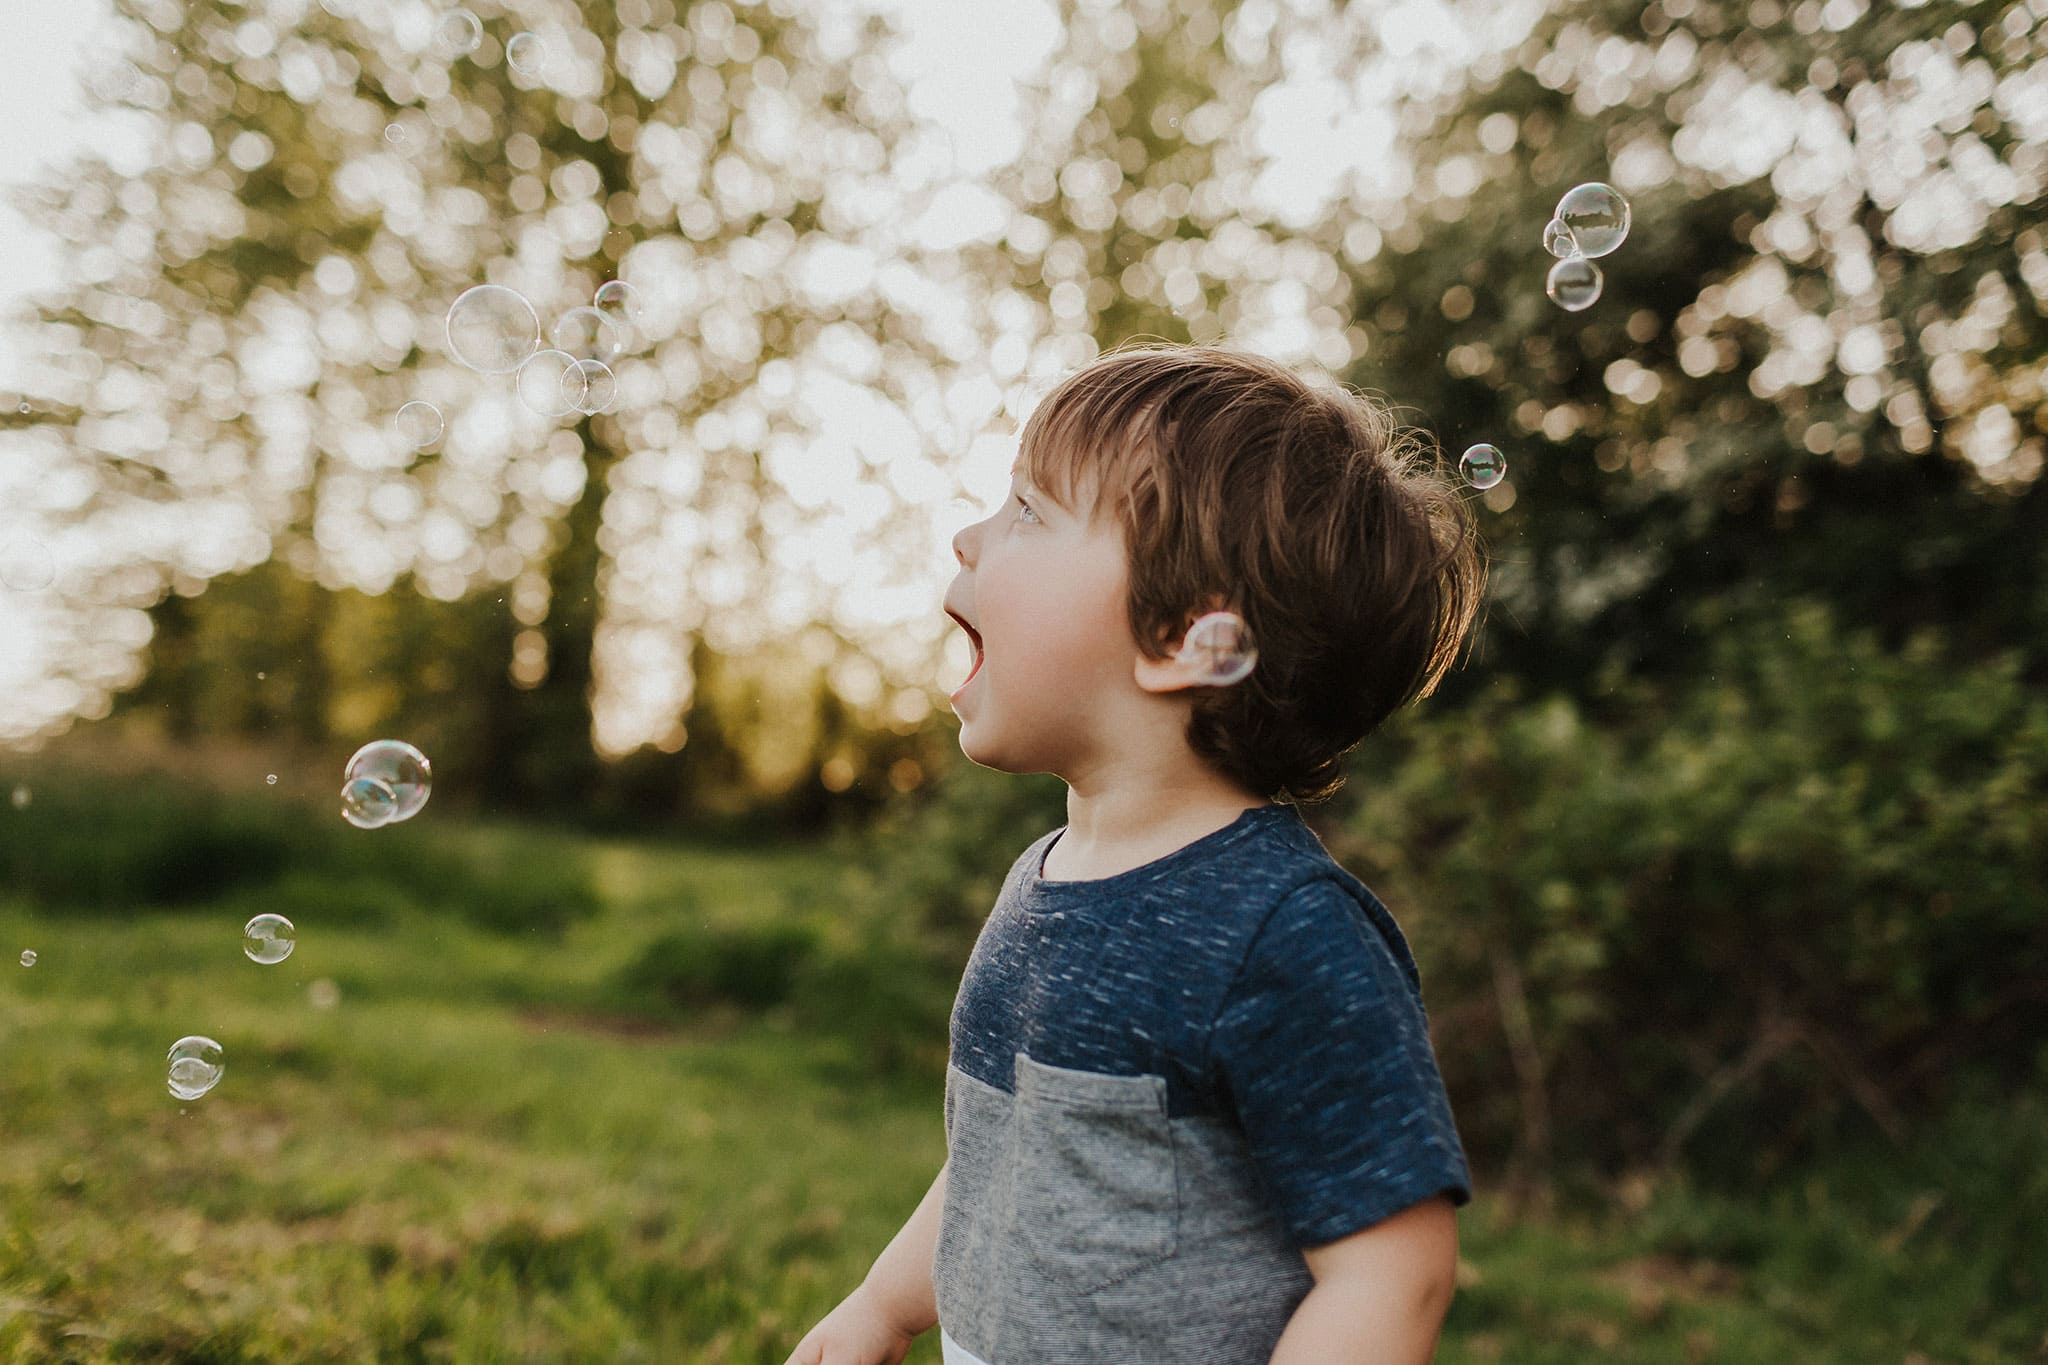 Boy trying to catch bubbles